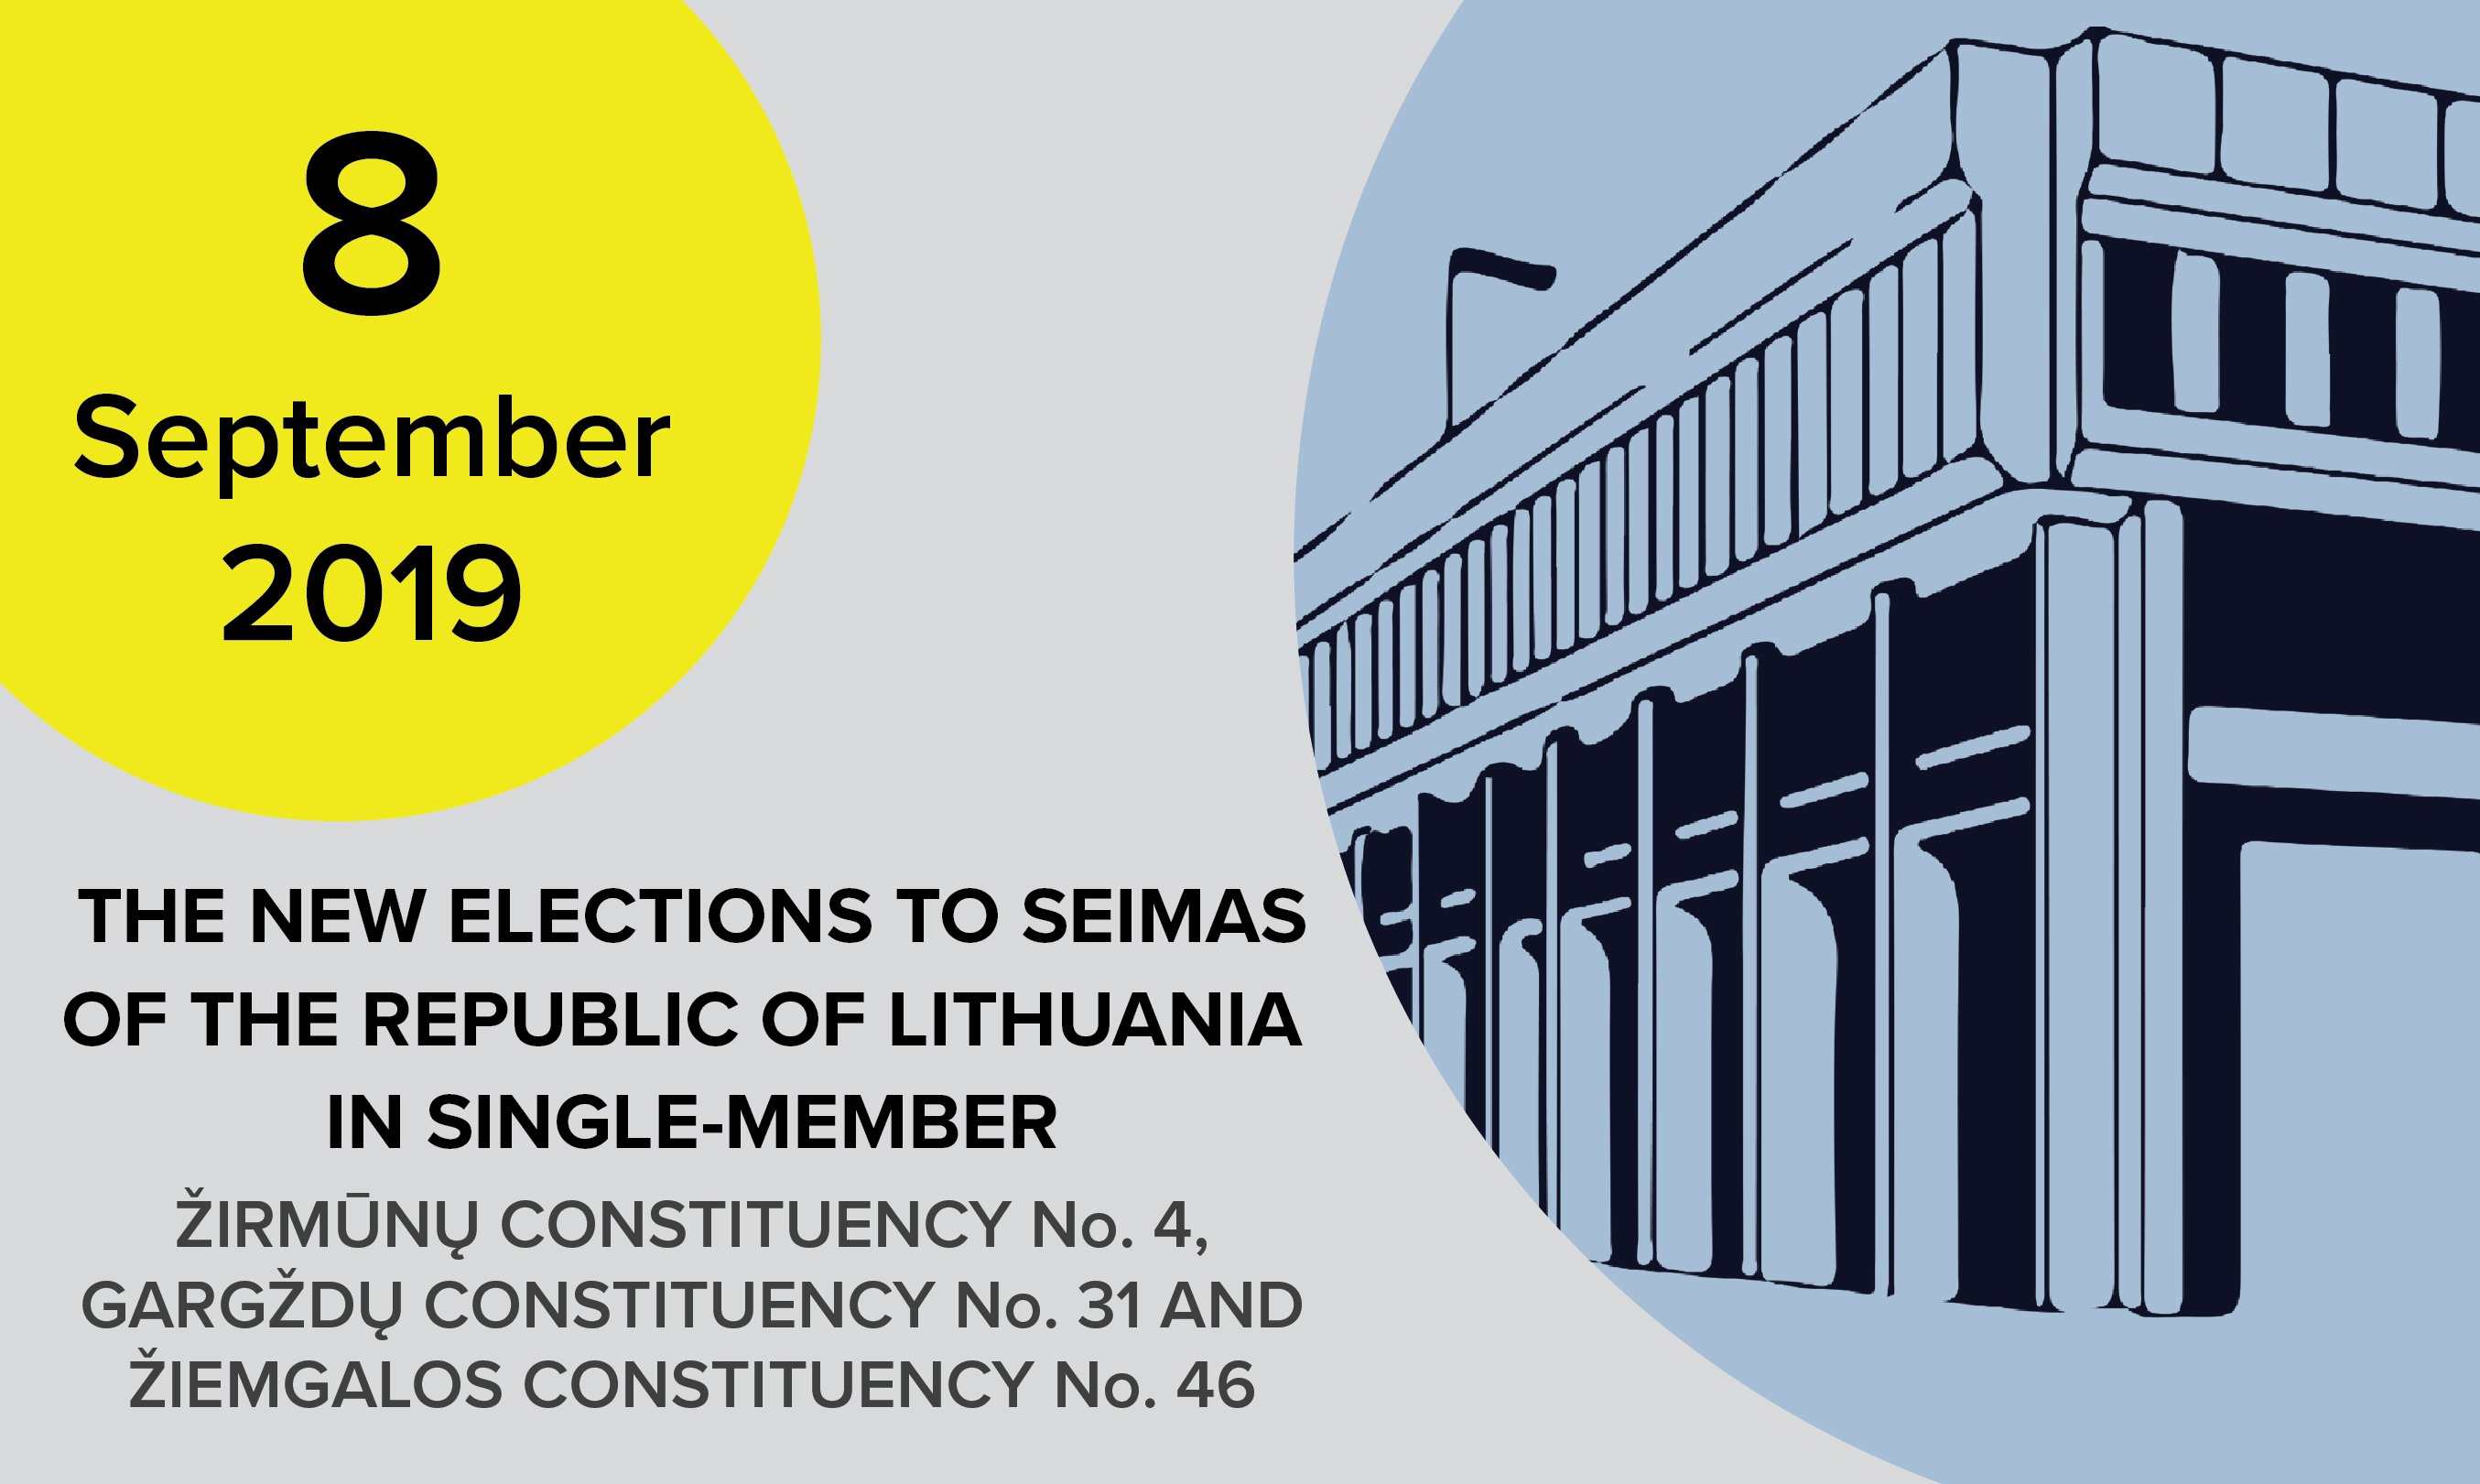 The new Elections to the Seimas